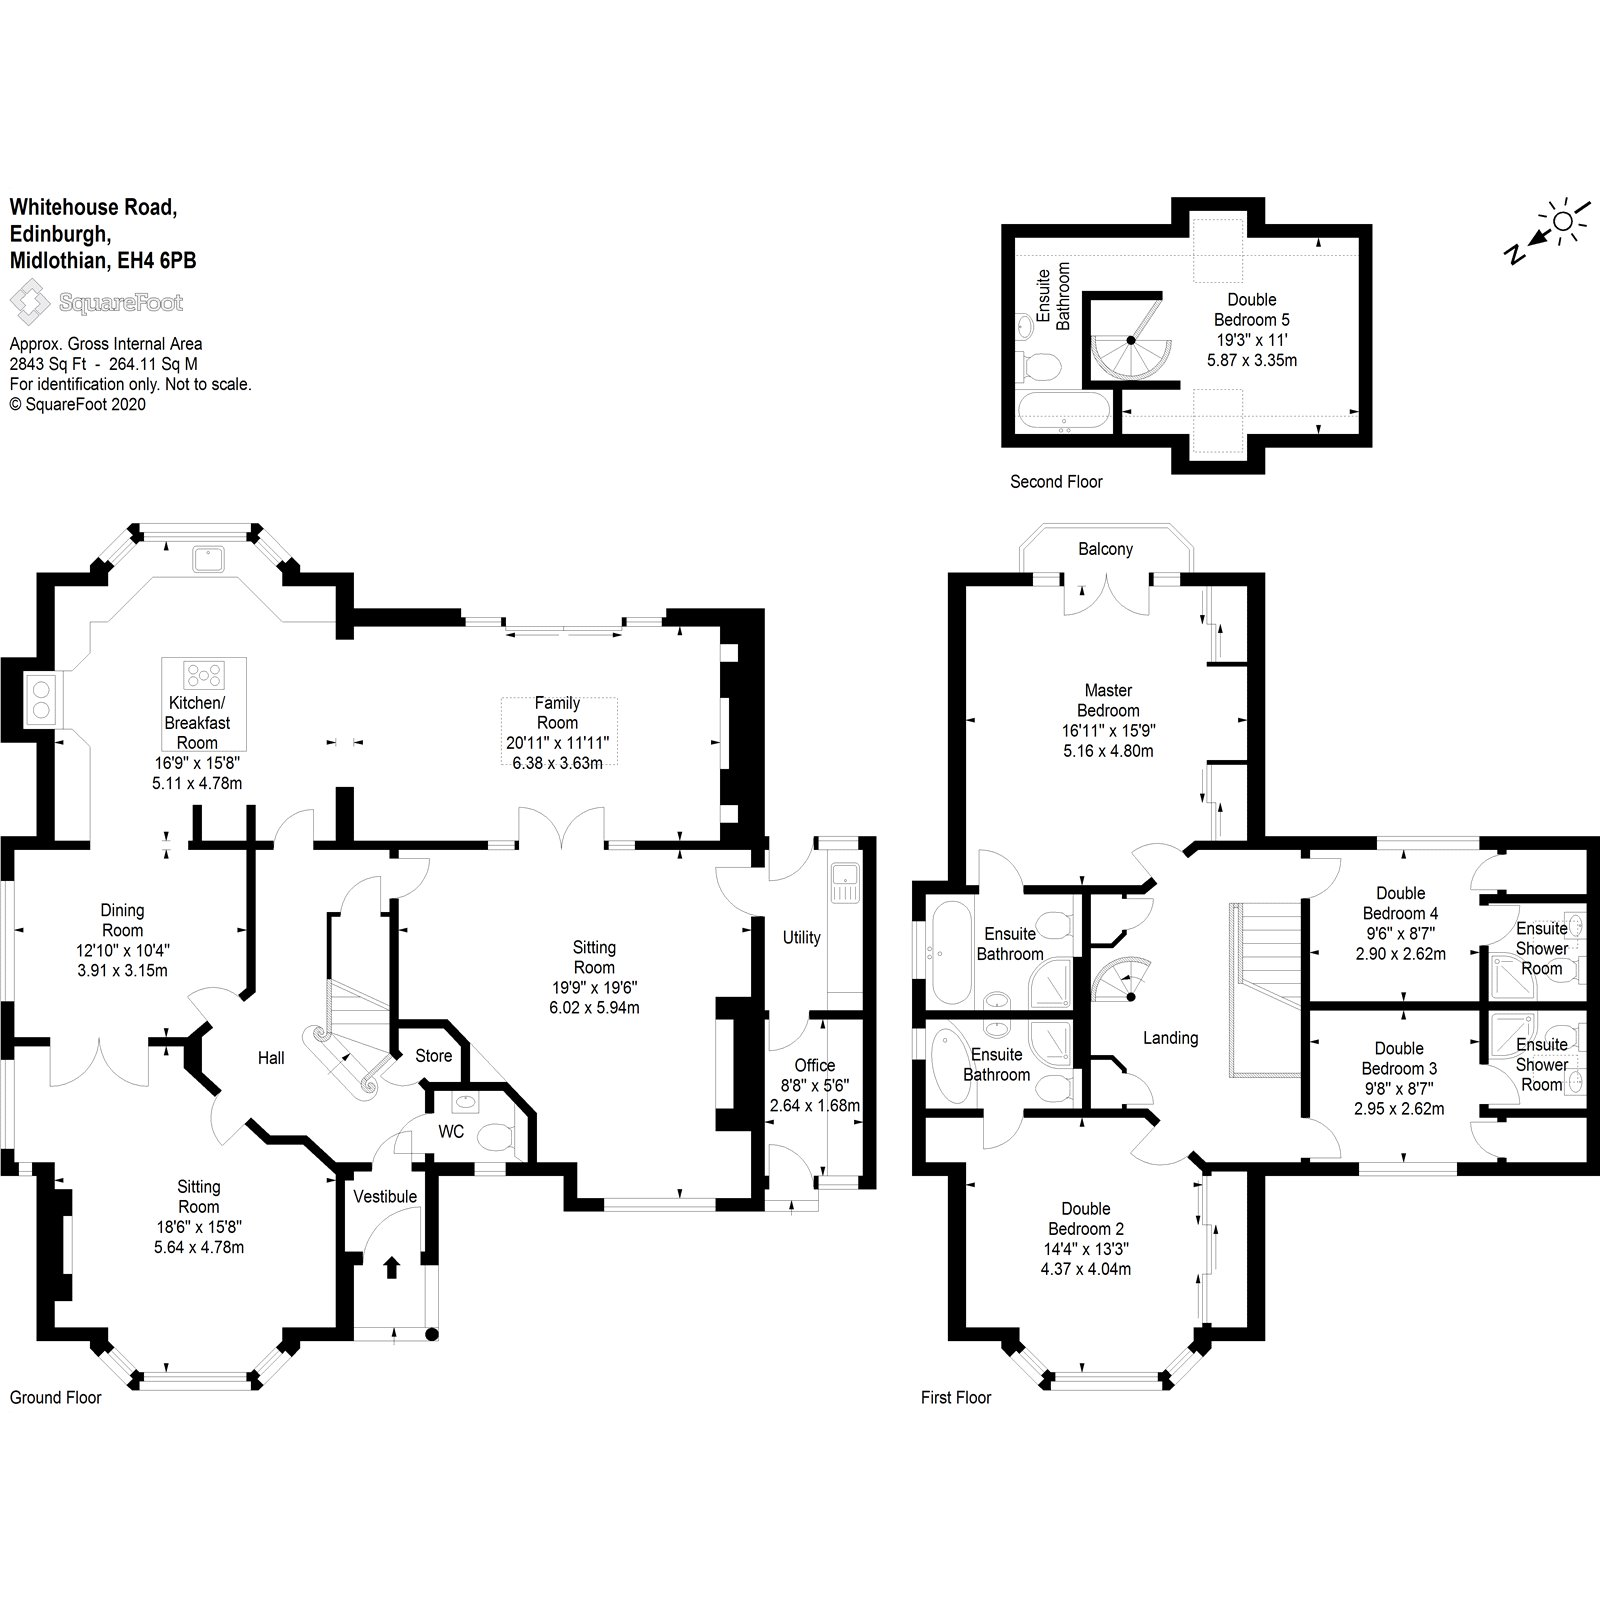 Floorplans for Whitehouse Road, Edinburgh, EH4